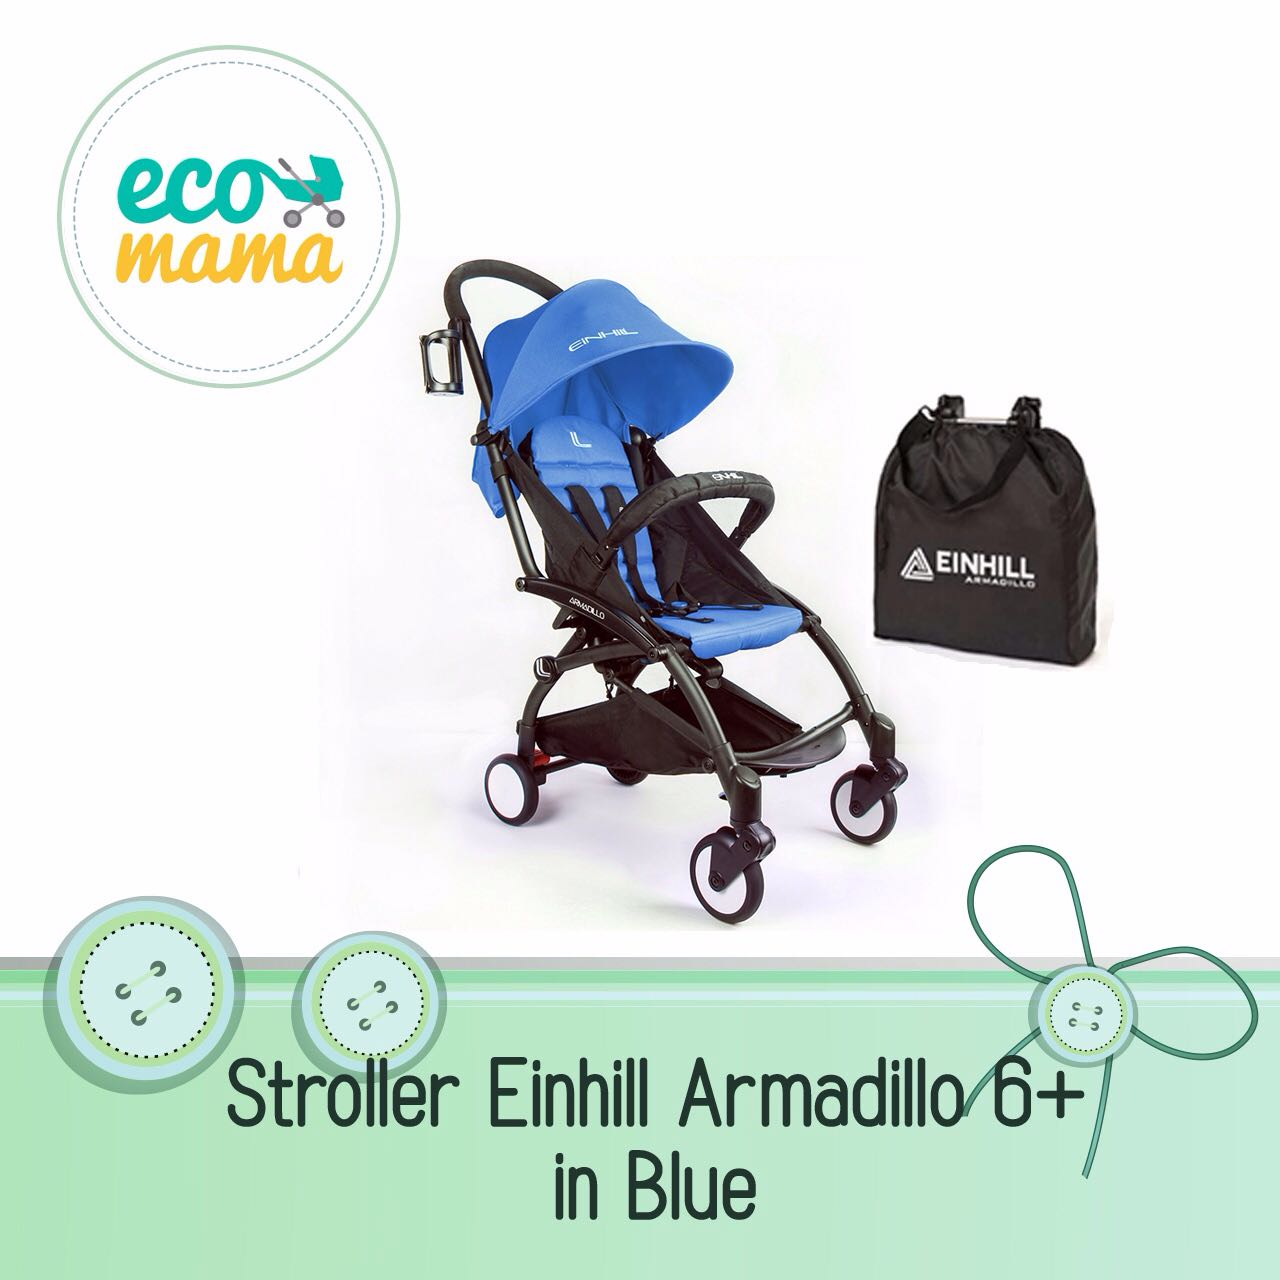 Einhill Armadillo 2 in Blue